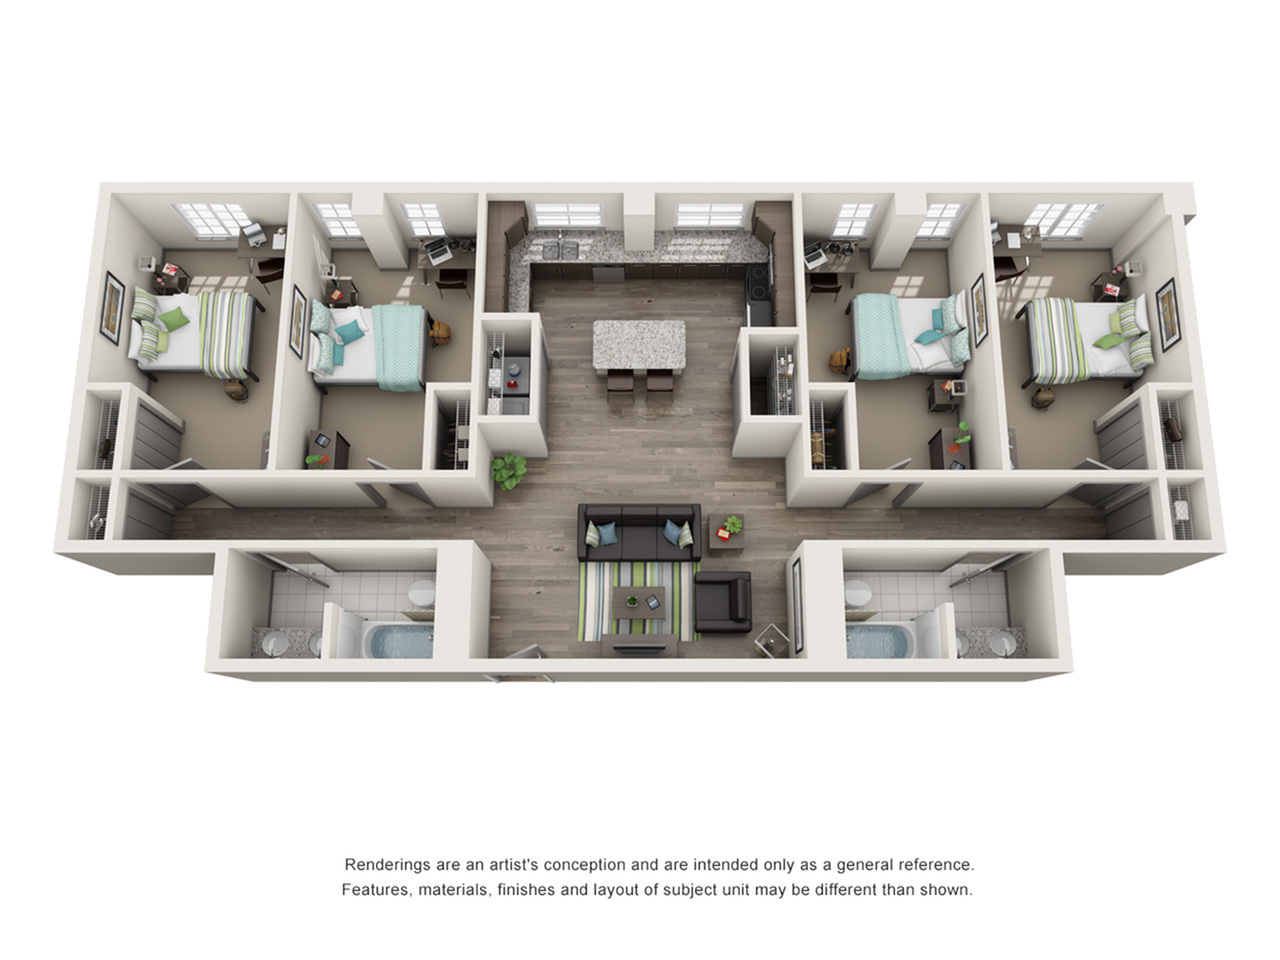 4 Bedroom Floor Plan | ISU Campus Apartments | Smallwood Plaza